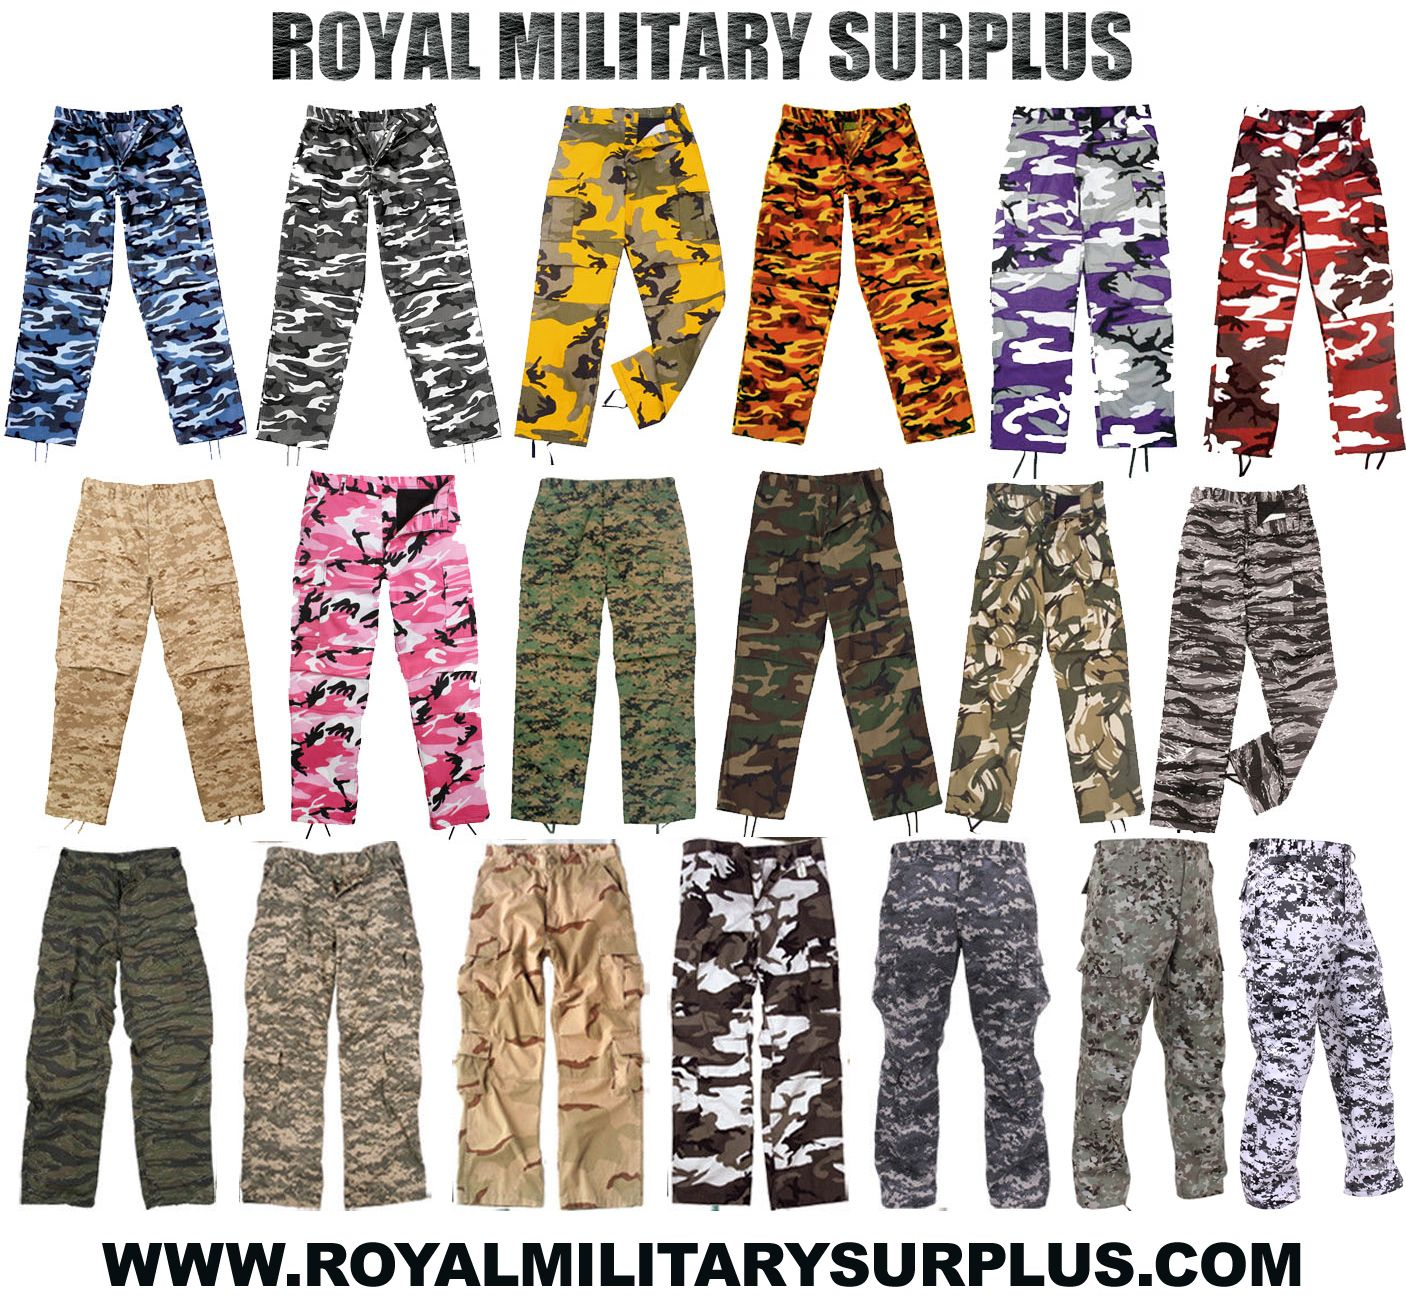 Pin by Royal Military Surplus on Military Pants   Trousers ... 6b9093544bb